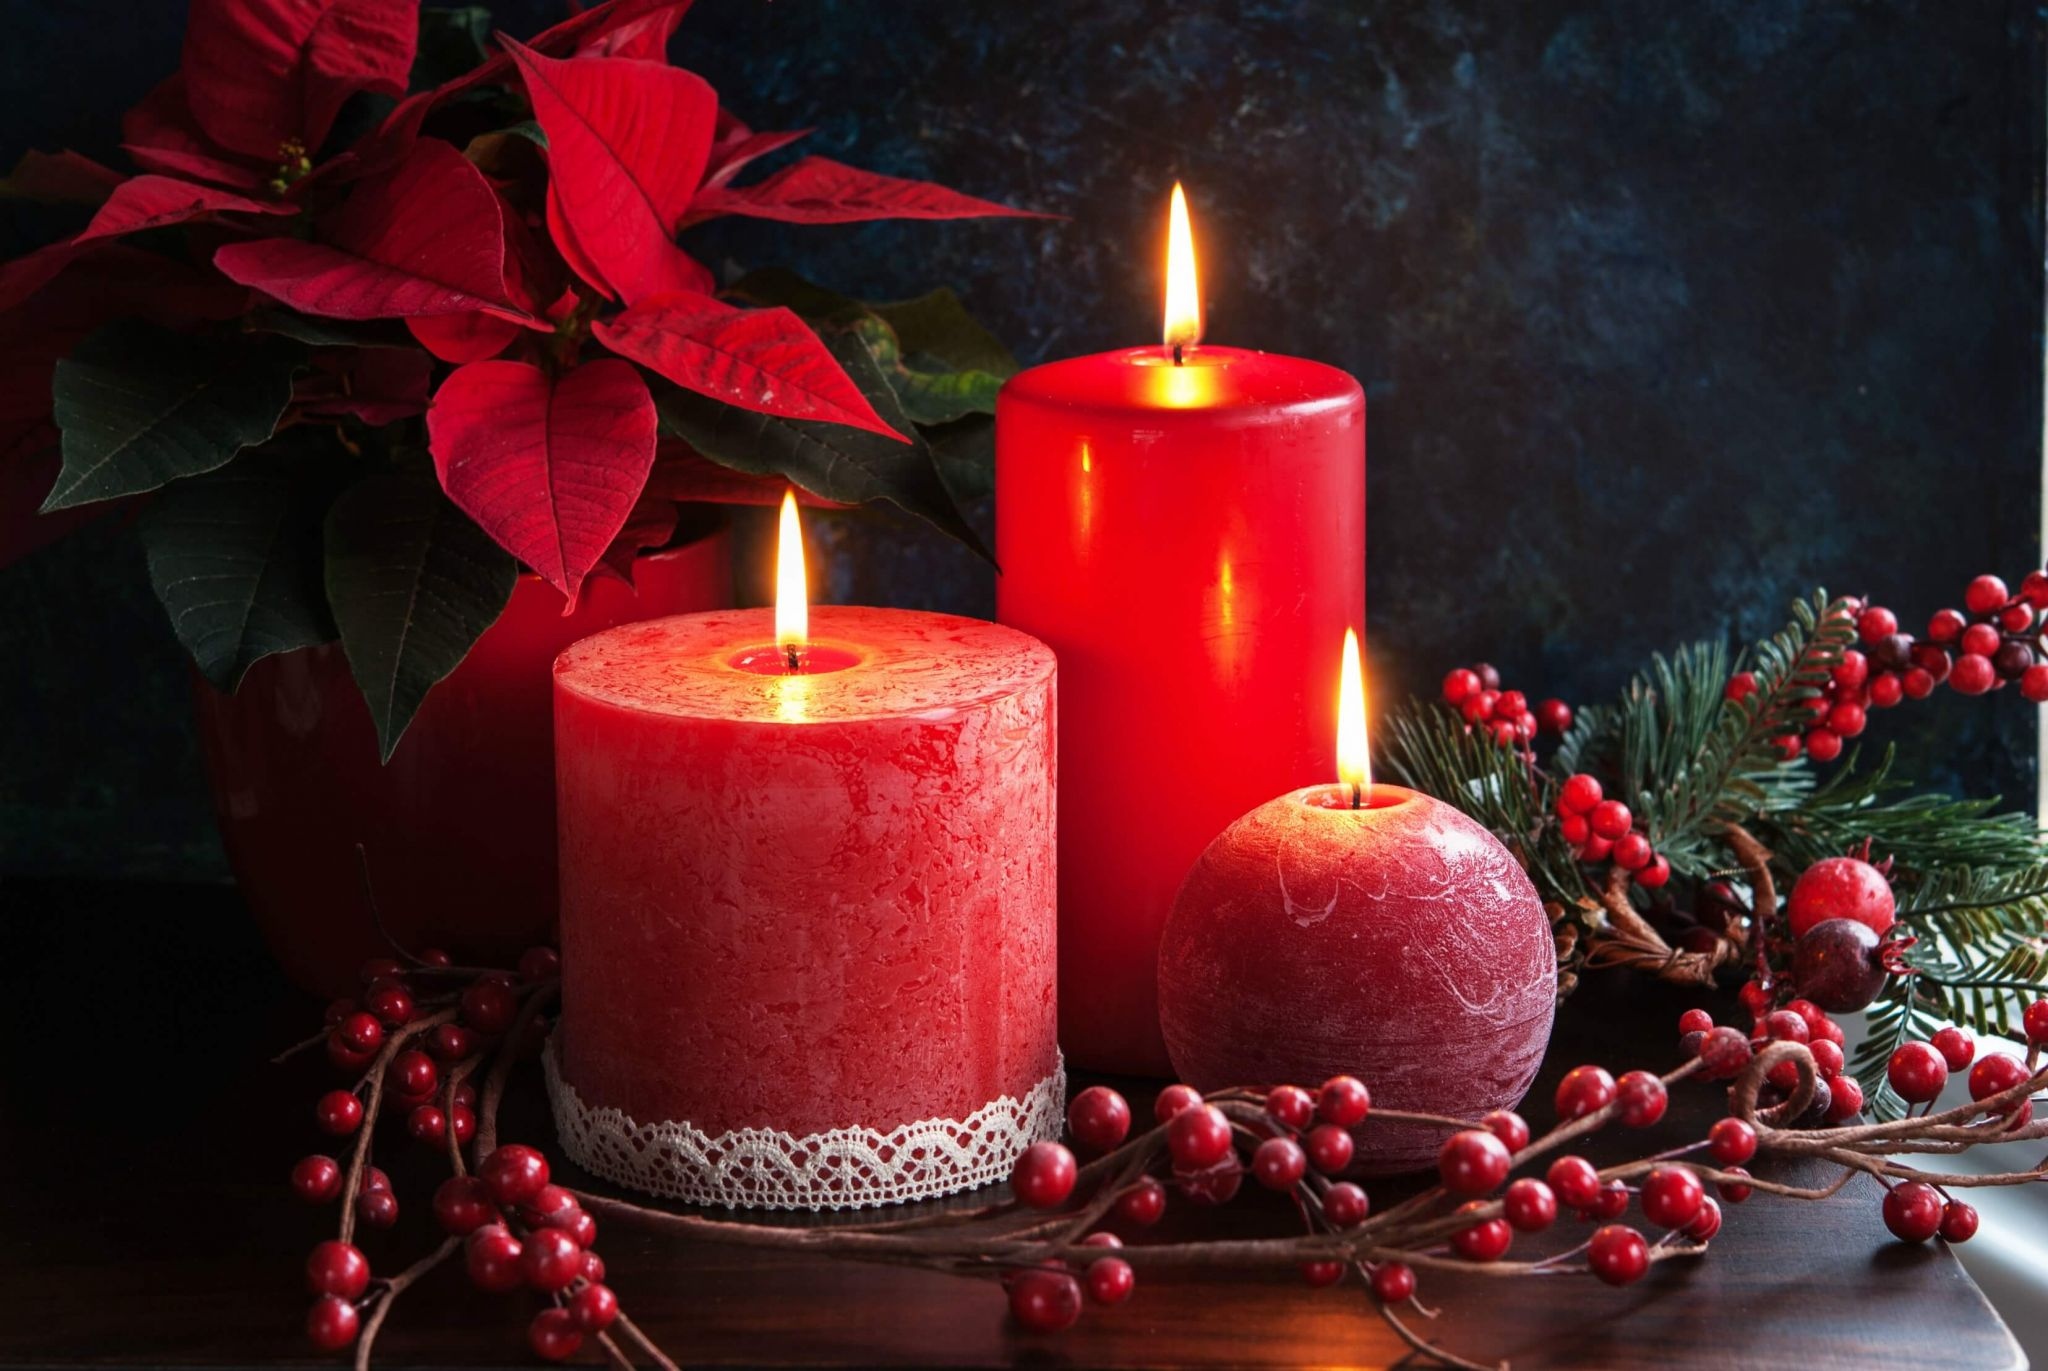 Poinsettia care - Christmas candles, berries and a poinsettia